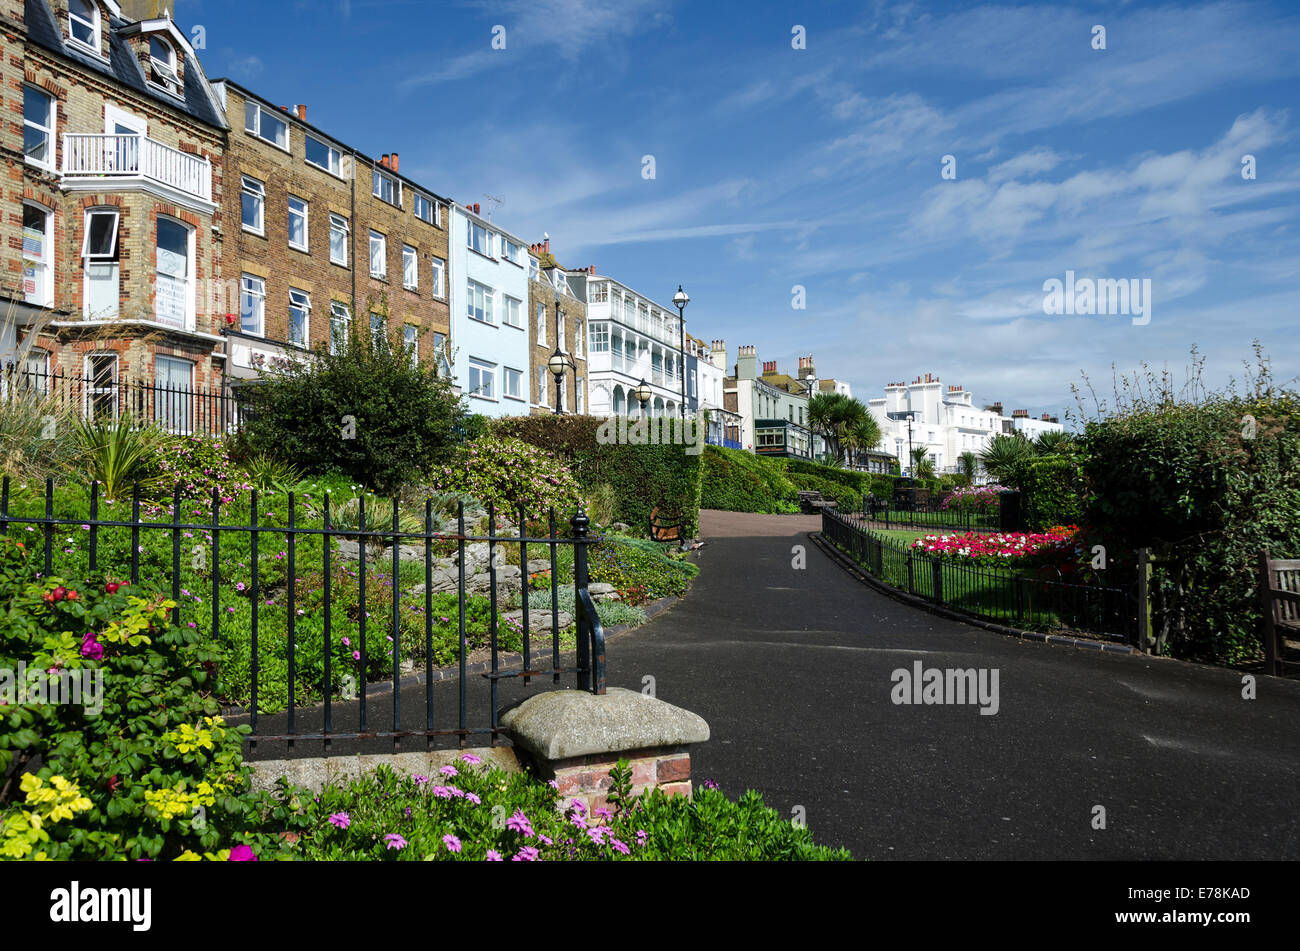 Victoria parade, in Broadstairs. - Stock Image